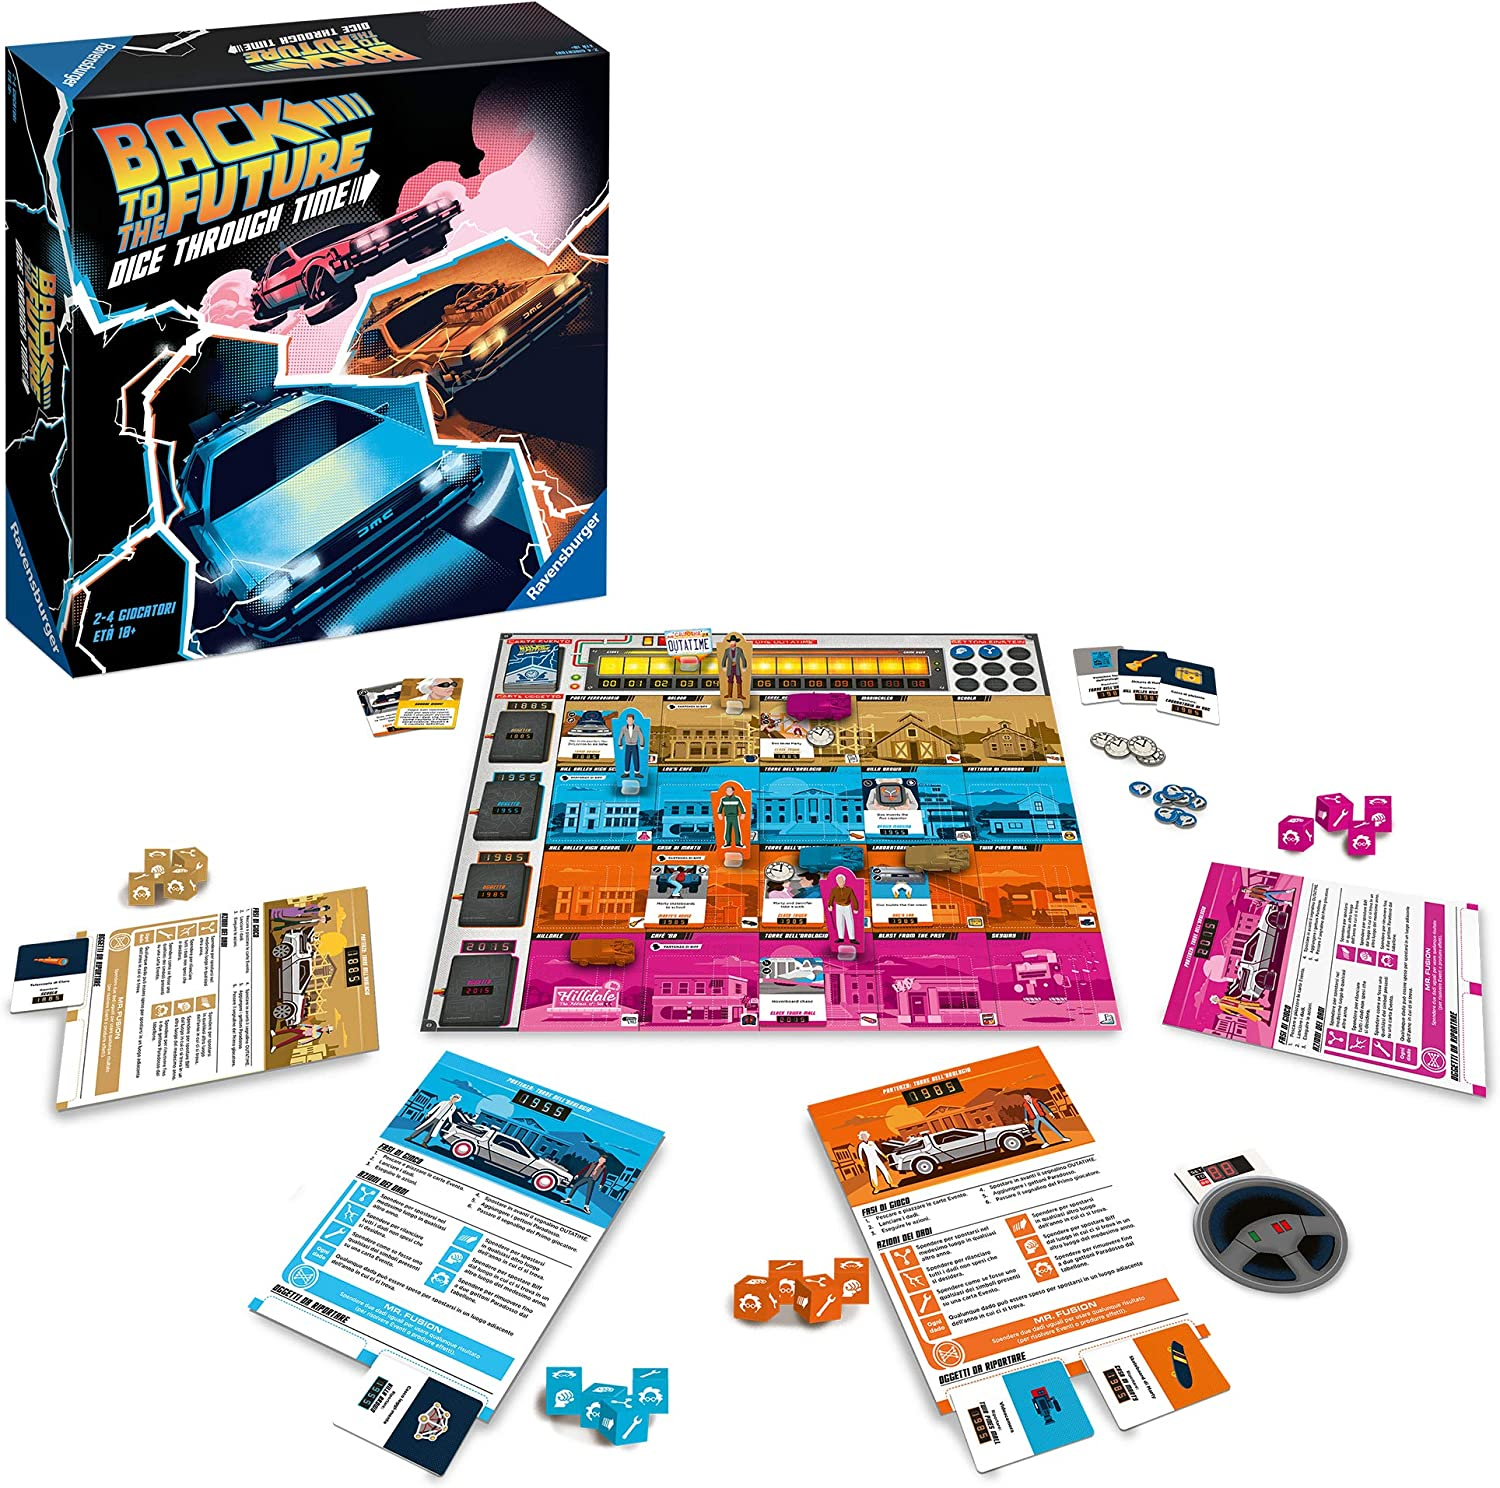 Back to the Future Dice Through Time is a family weight Back to the Future Board Game